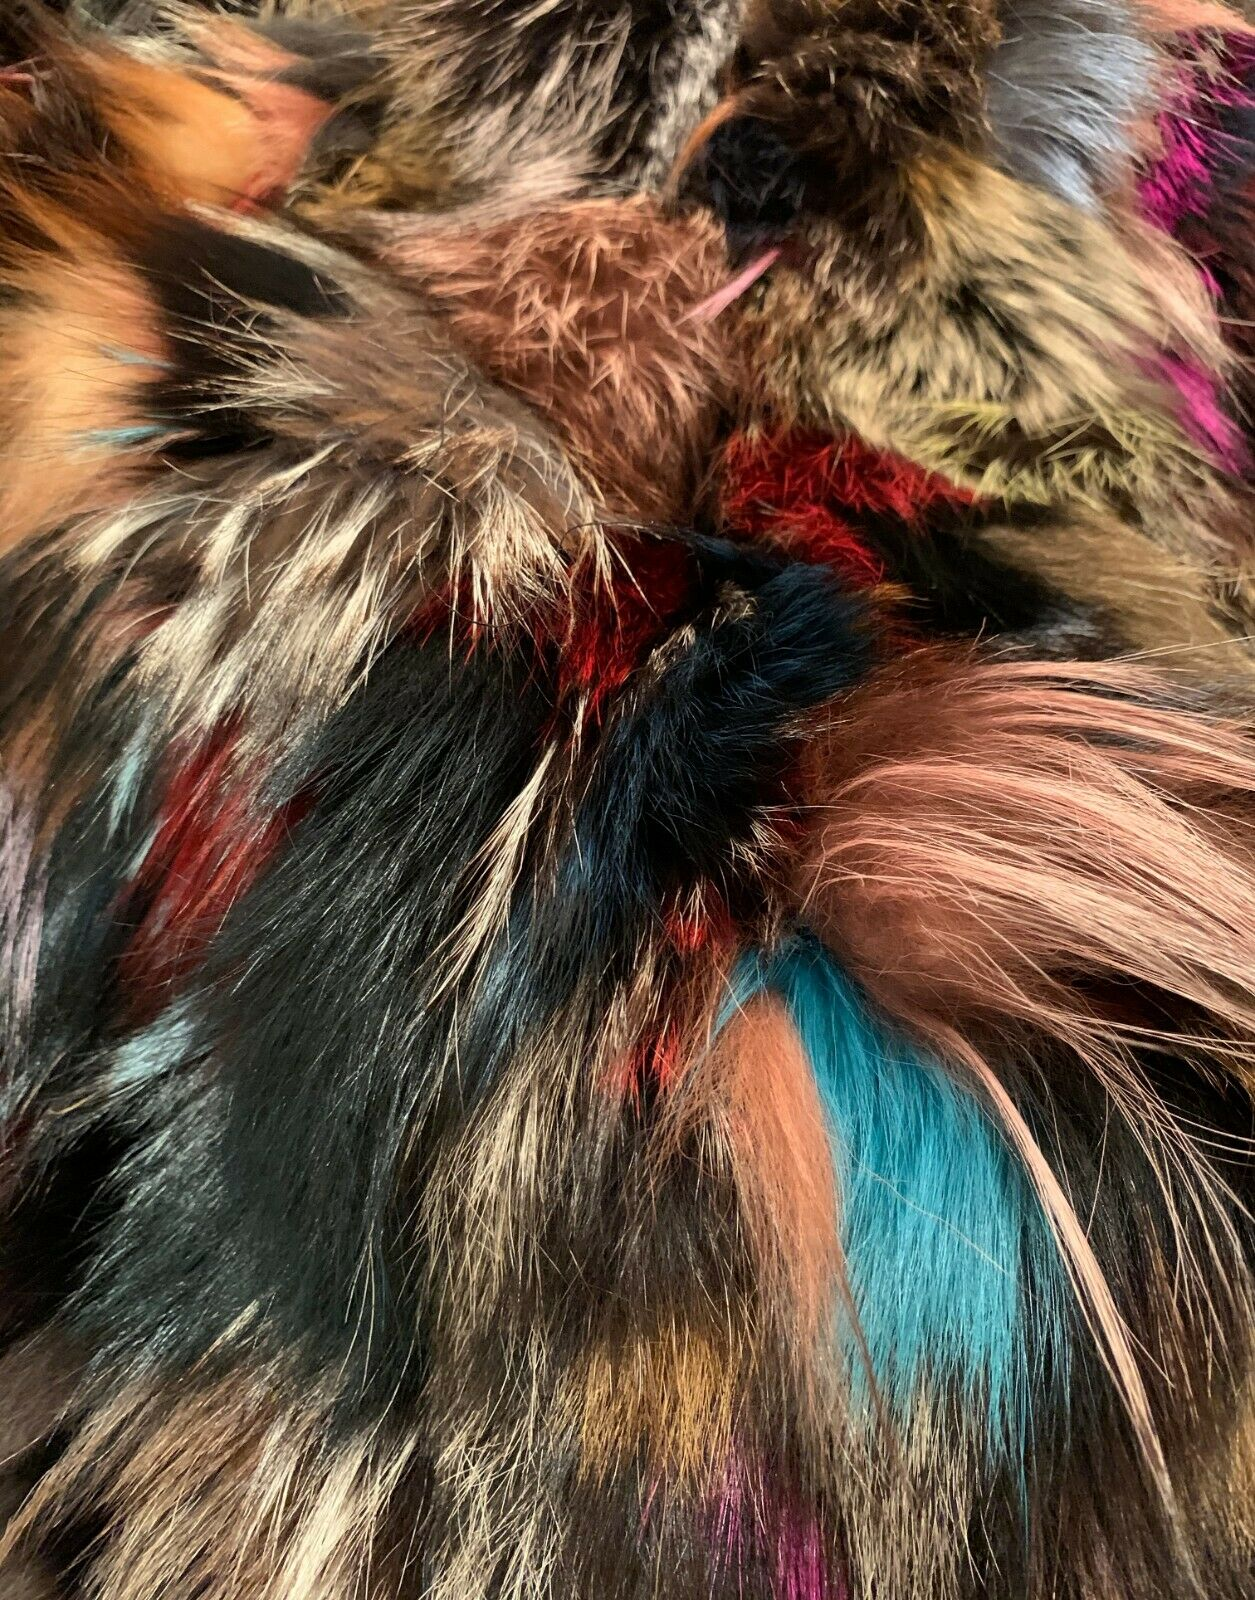 D. Damiani NY Multi-Color Fur Lined Coat Small - image 6